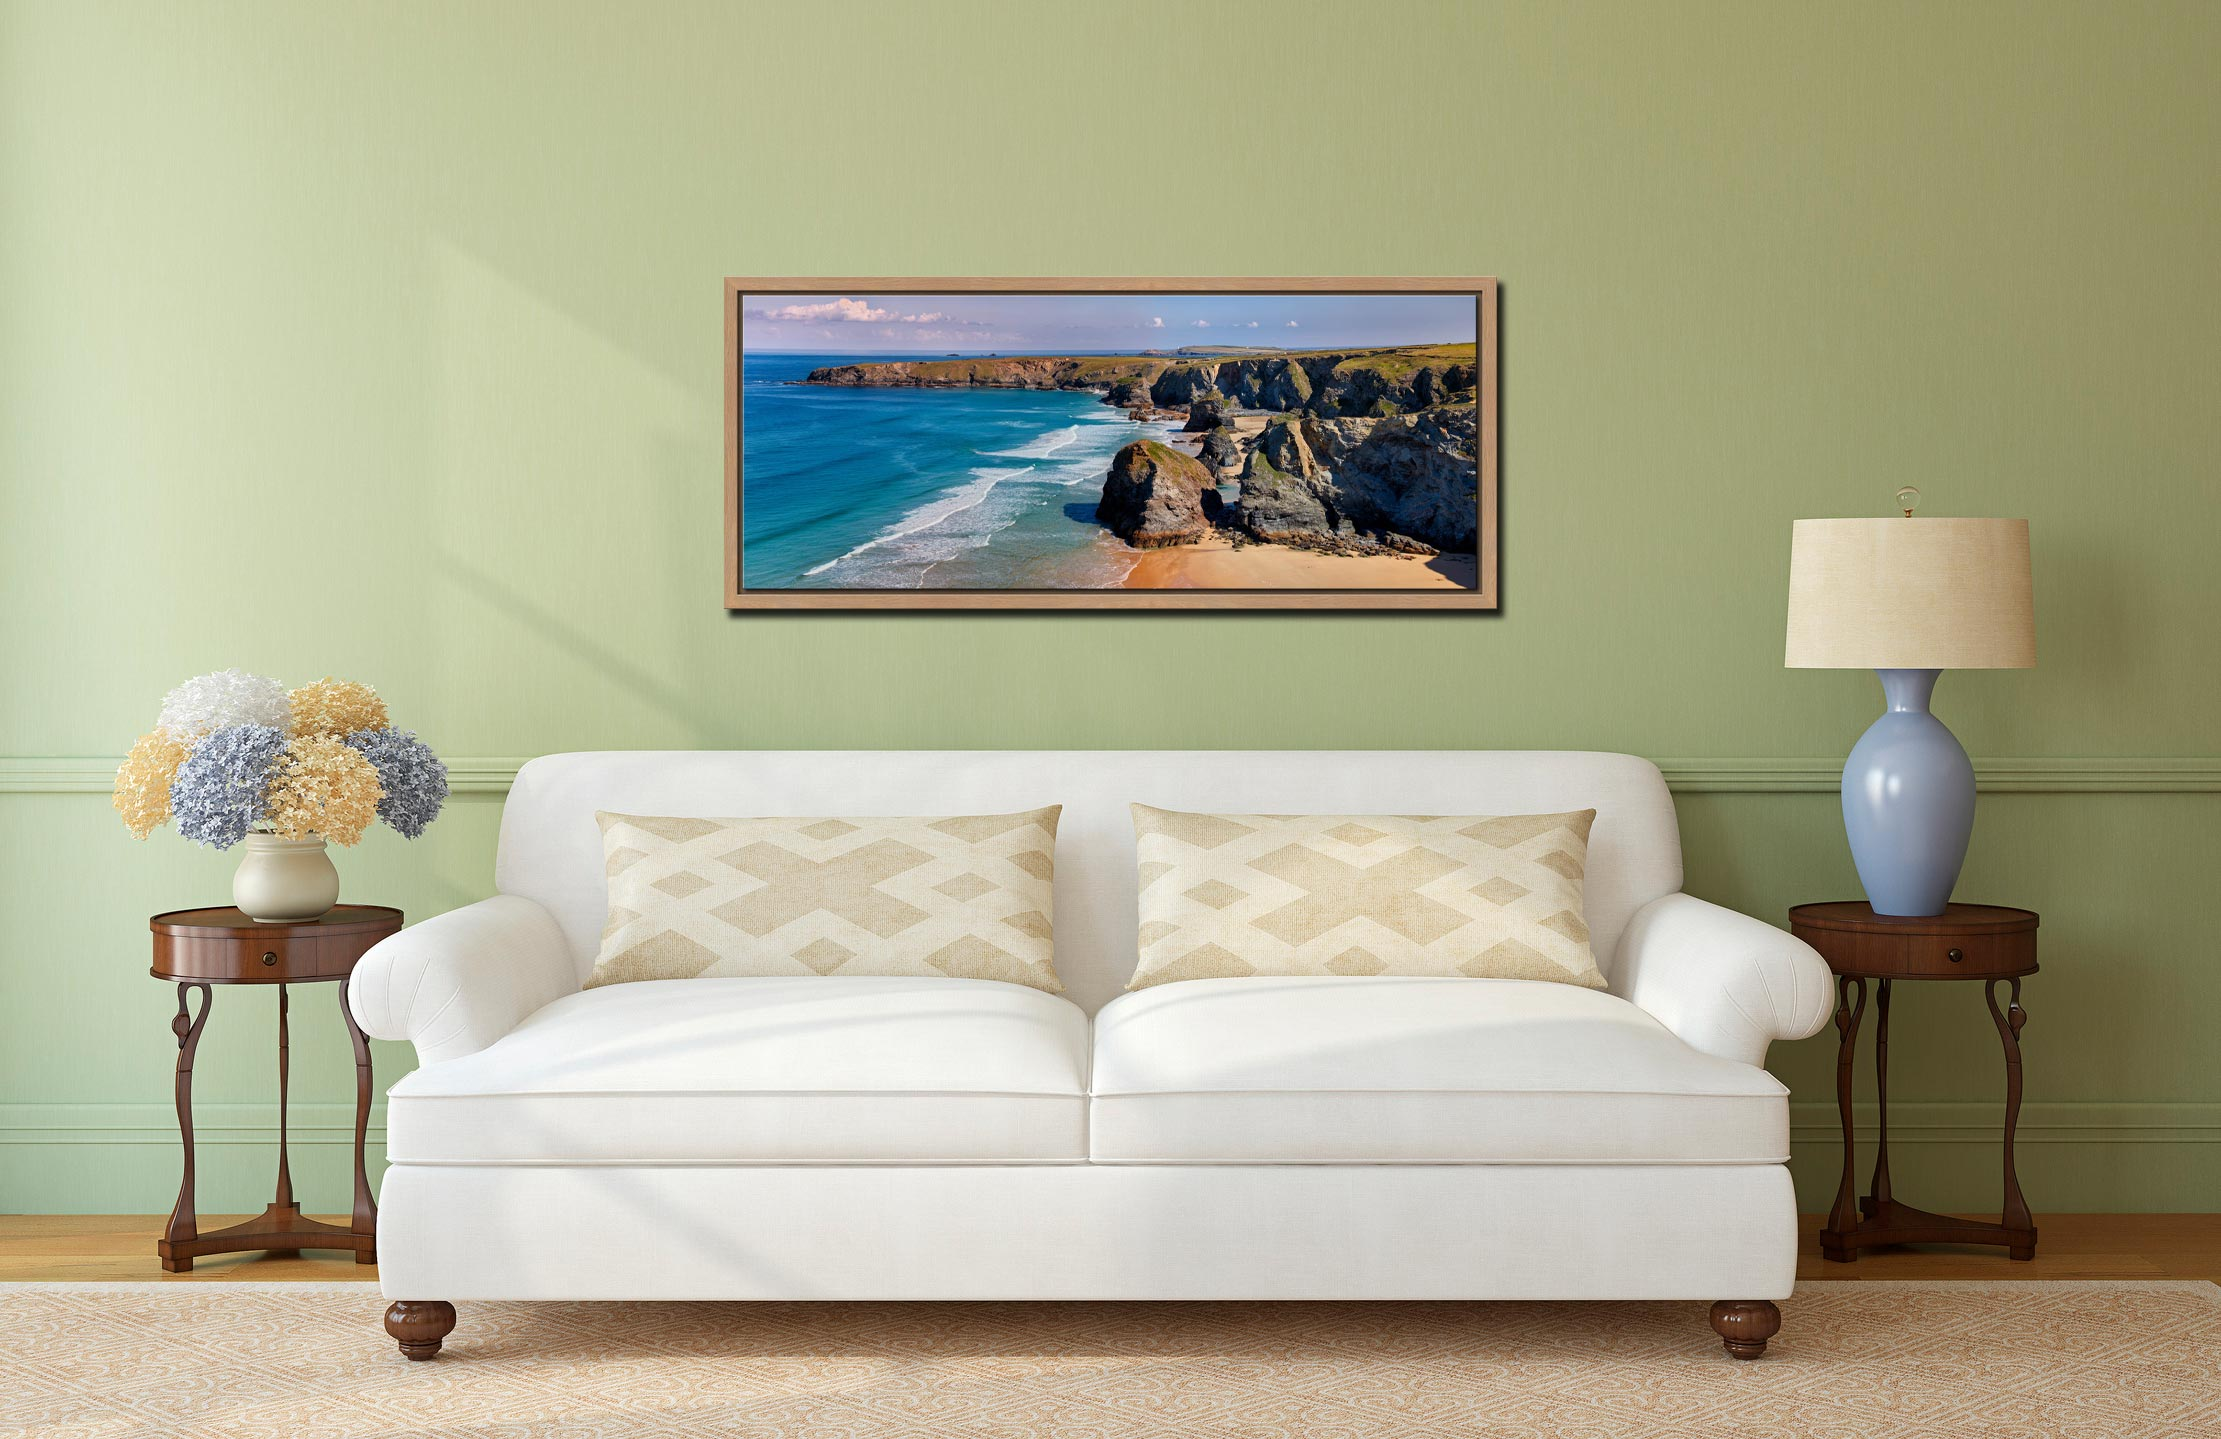 Very large high resolution image of Bedruthan rock stacks and golden beach - Oak floater frame with acrylic glazing on Wall